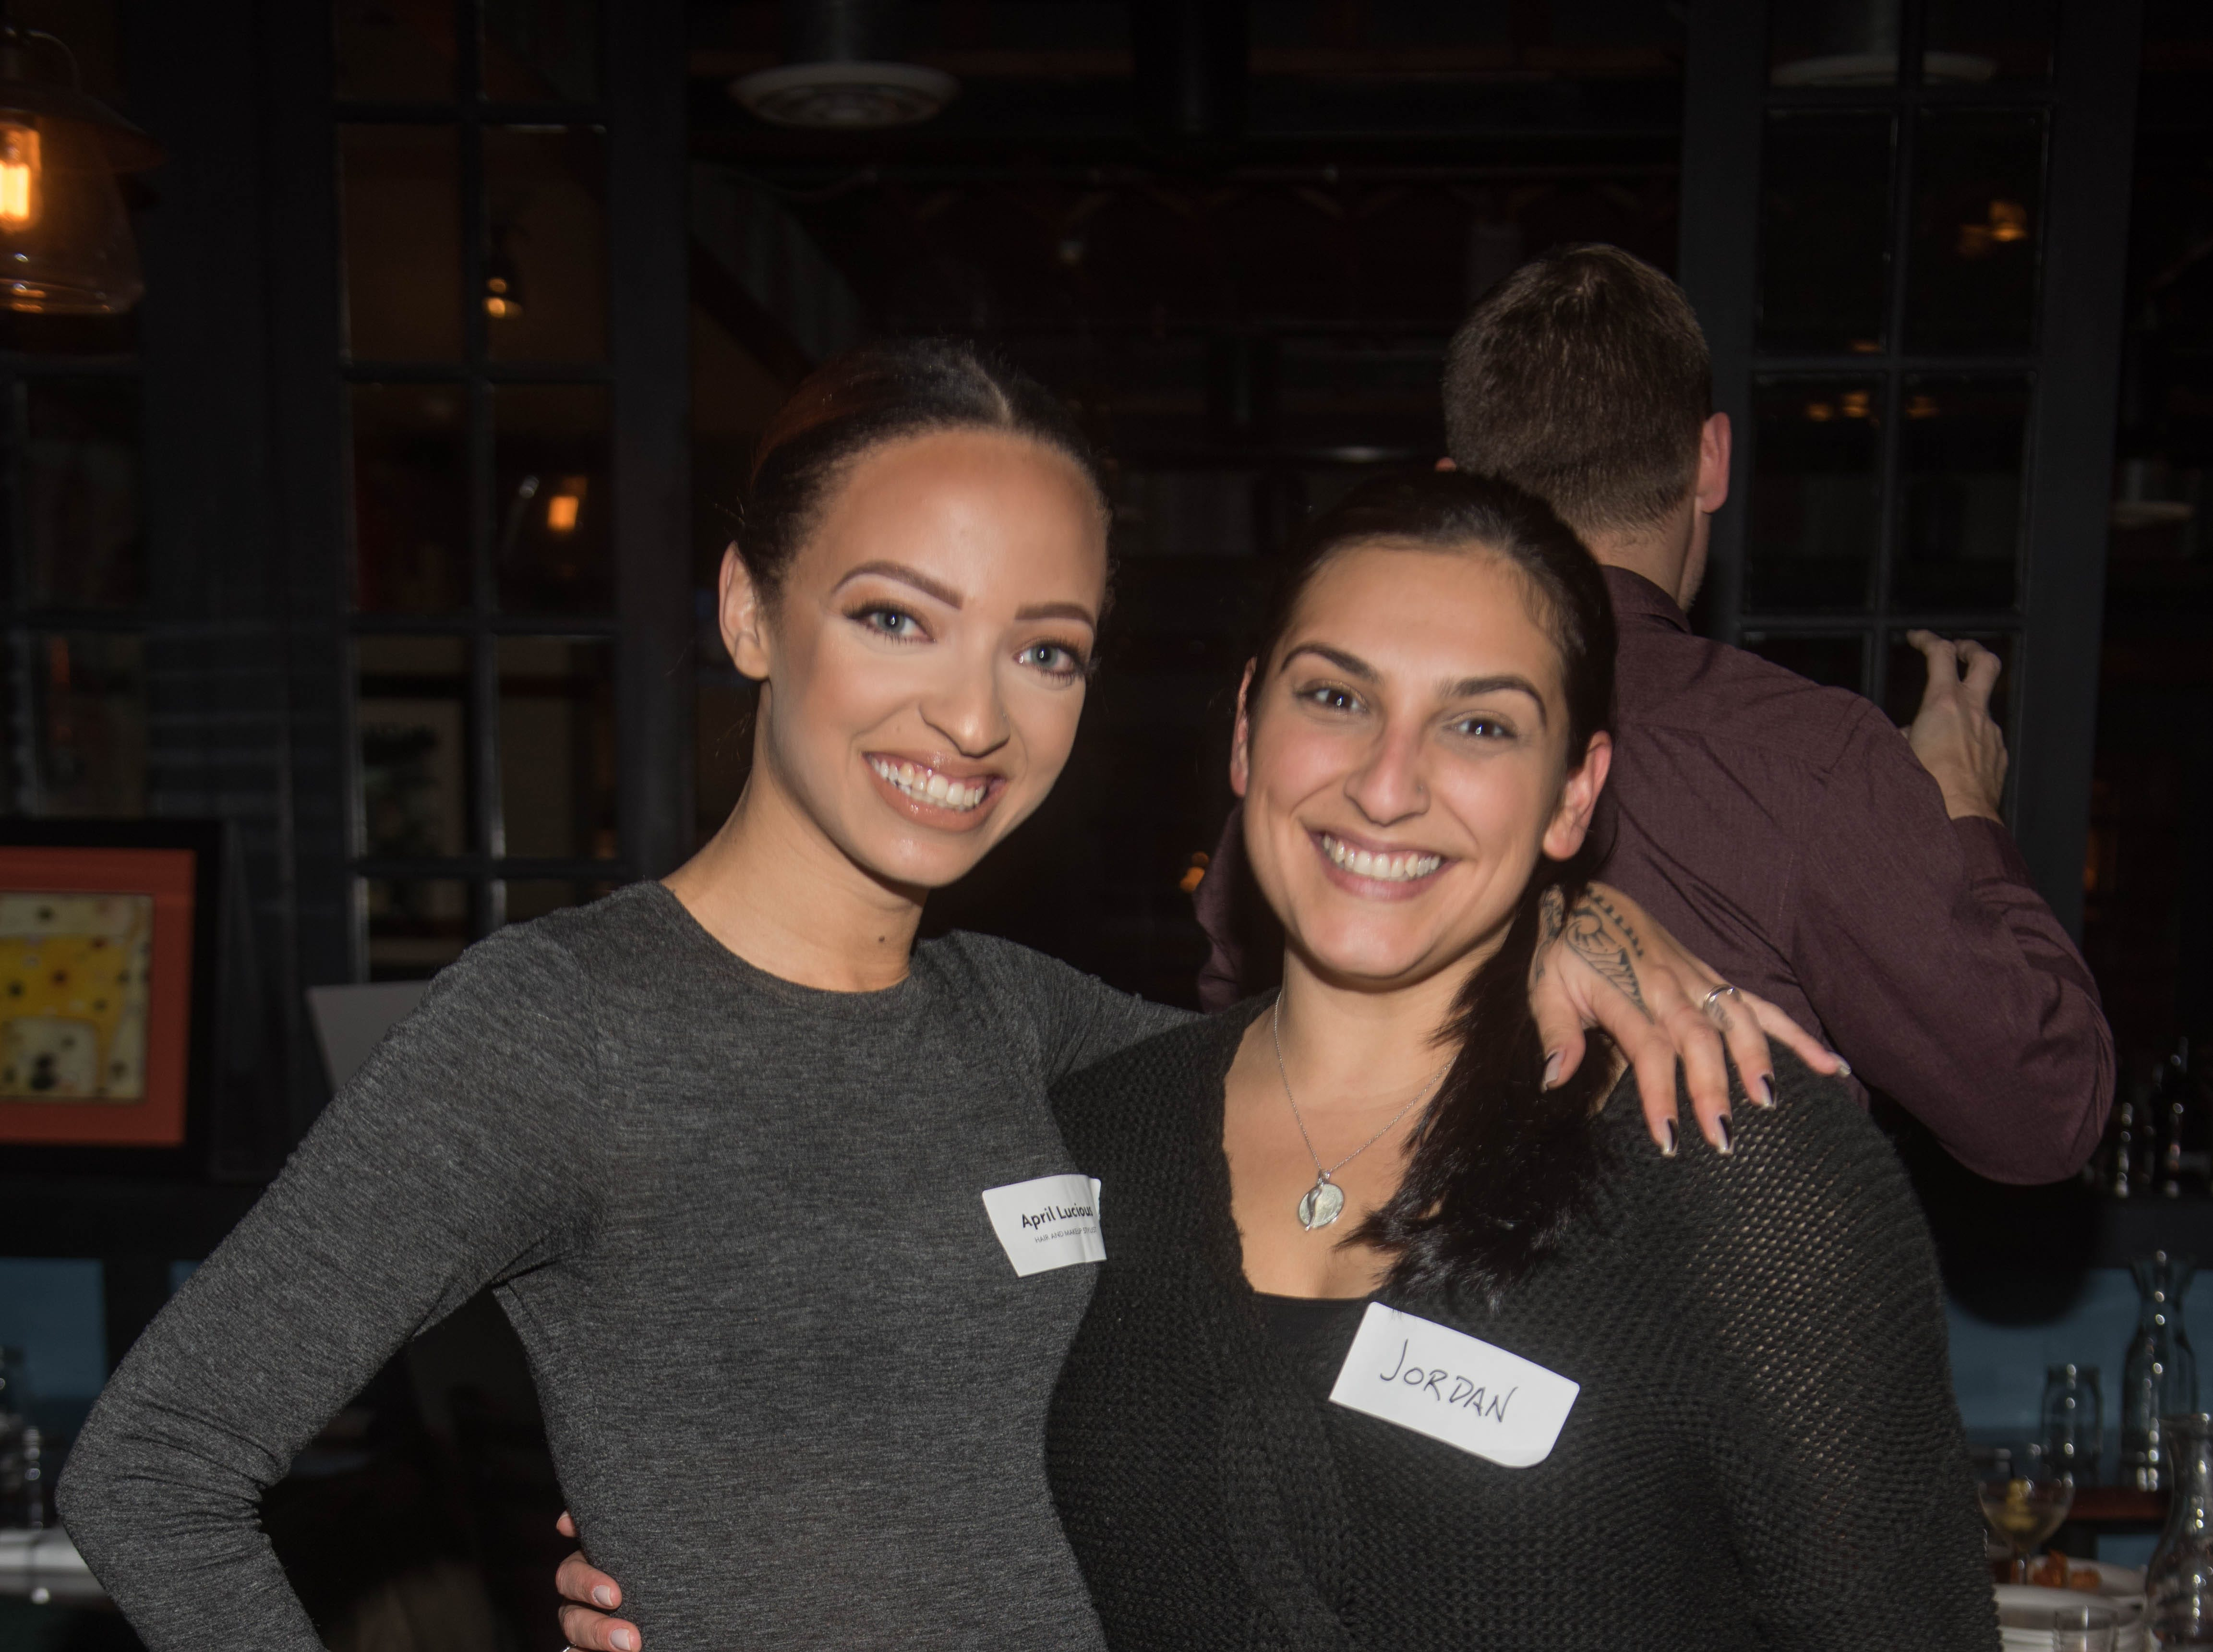 April Lucious and Jordan Murphy. (201) Magazine and NorthJersey.com held Taste Test Tuesday at he Dog and Cask in Rochelle Park with this month's cover model, Lauran Tuck and former cover model and former NY Giant Justin Tuck. 11/13/2018